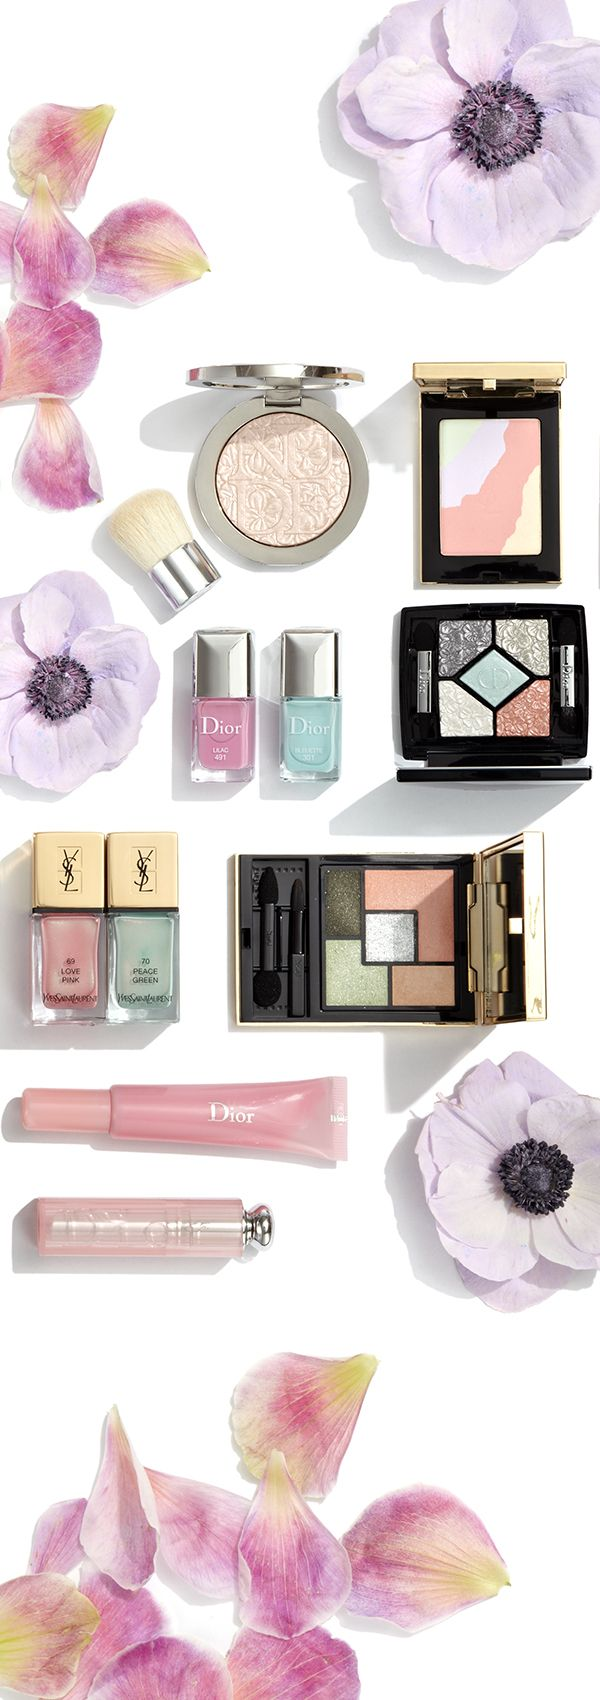 YSL and Dior makeup for spring 2016